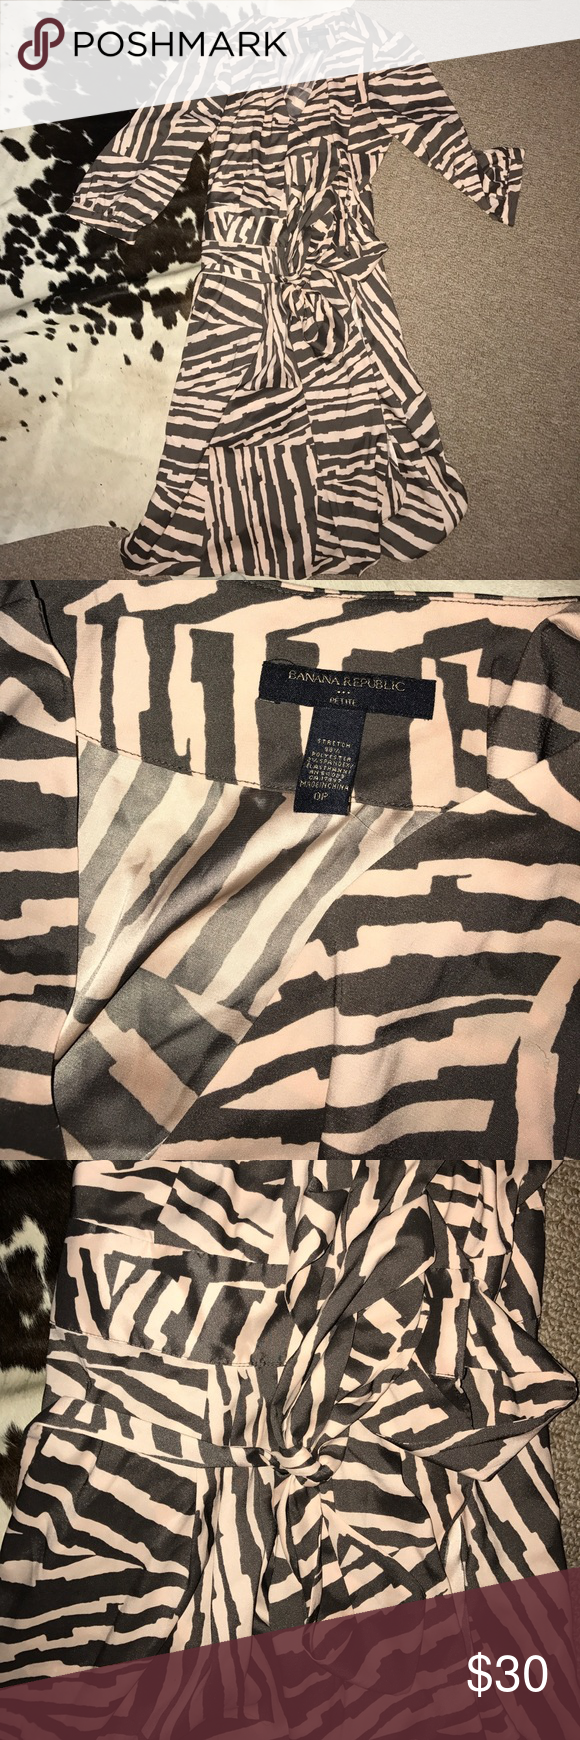 Banana republic zebra wrap dress 0p brown & pink No flaws. Great work dress. Has stretch to it. Wraps and ties at waist. 3/4 sleeve. Brown and pale pink color. Banana Republic Dresses